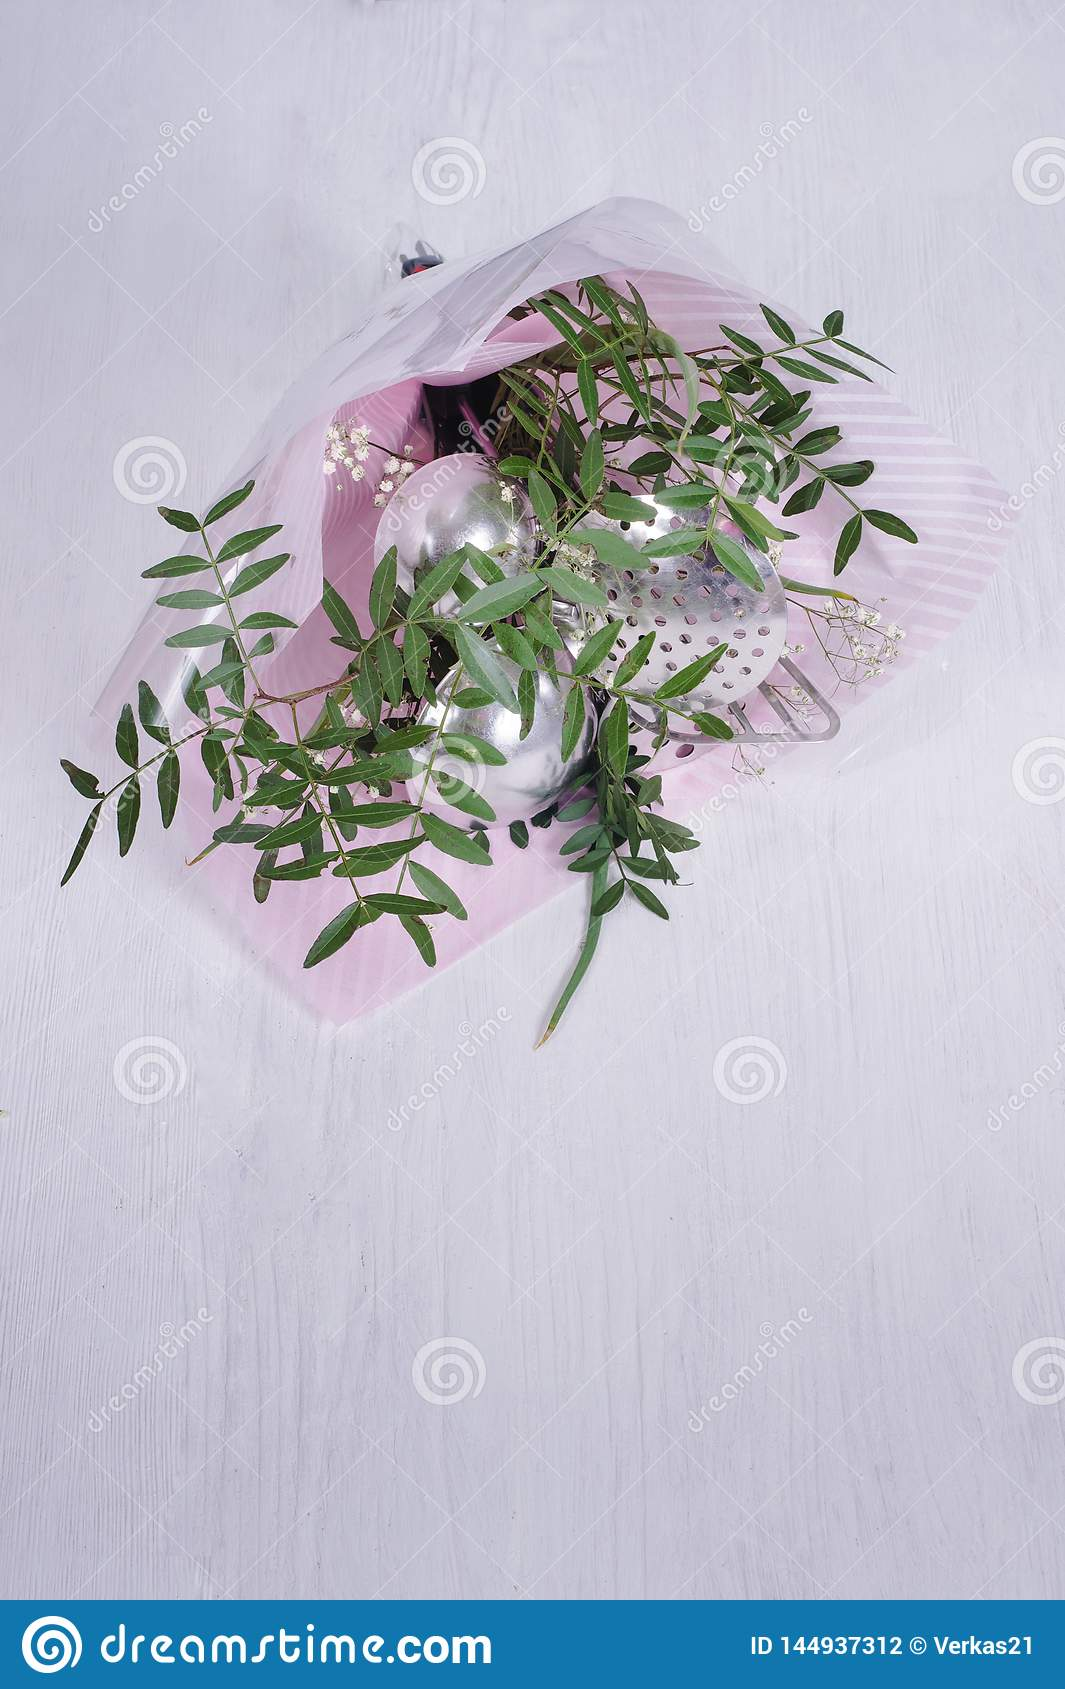 Bouquet of leaves and kitchen utensils.  gift-wrapped tools as symbol of patriarchal society and gender inequality. Sexism and